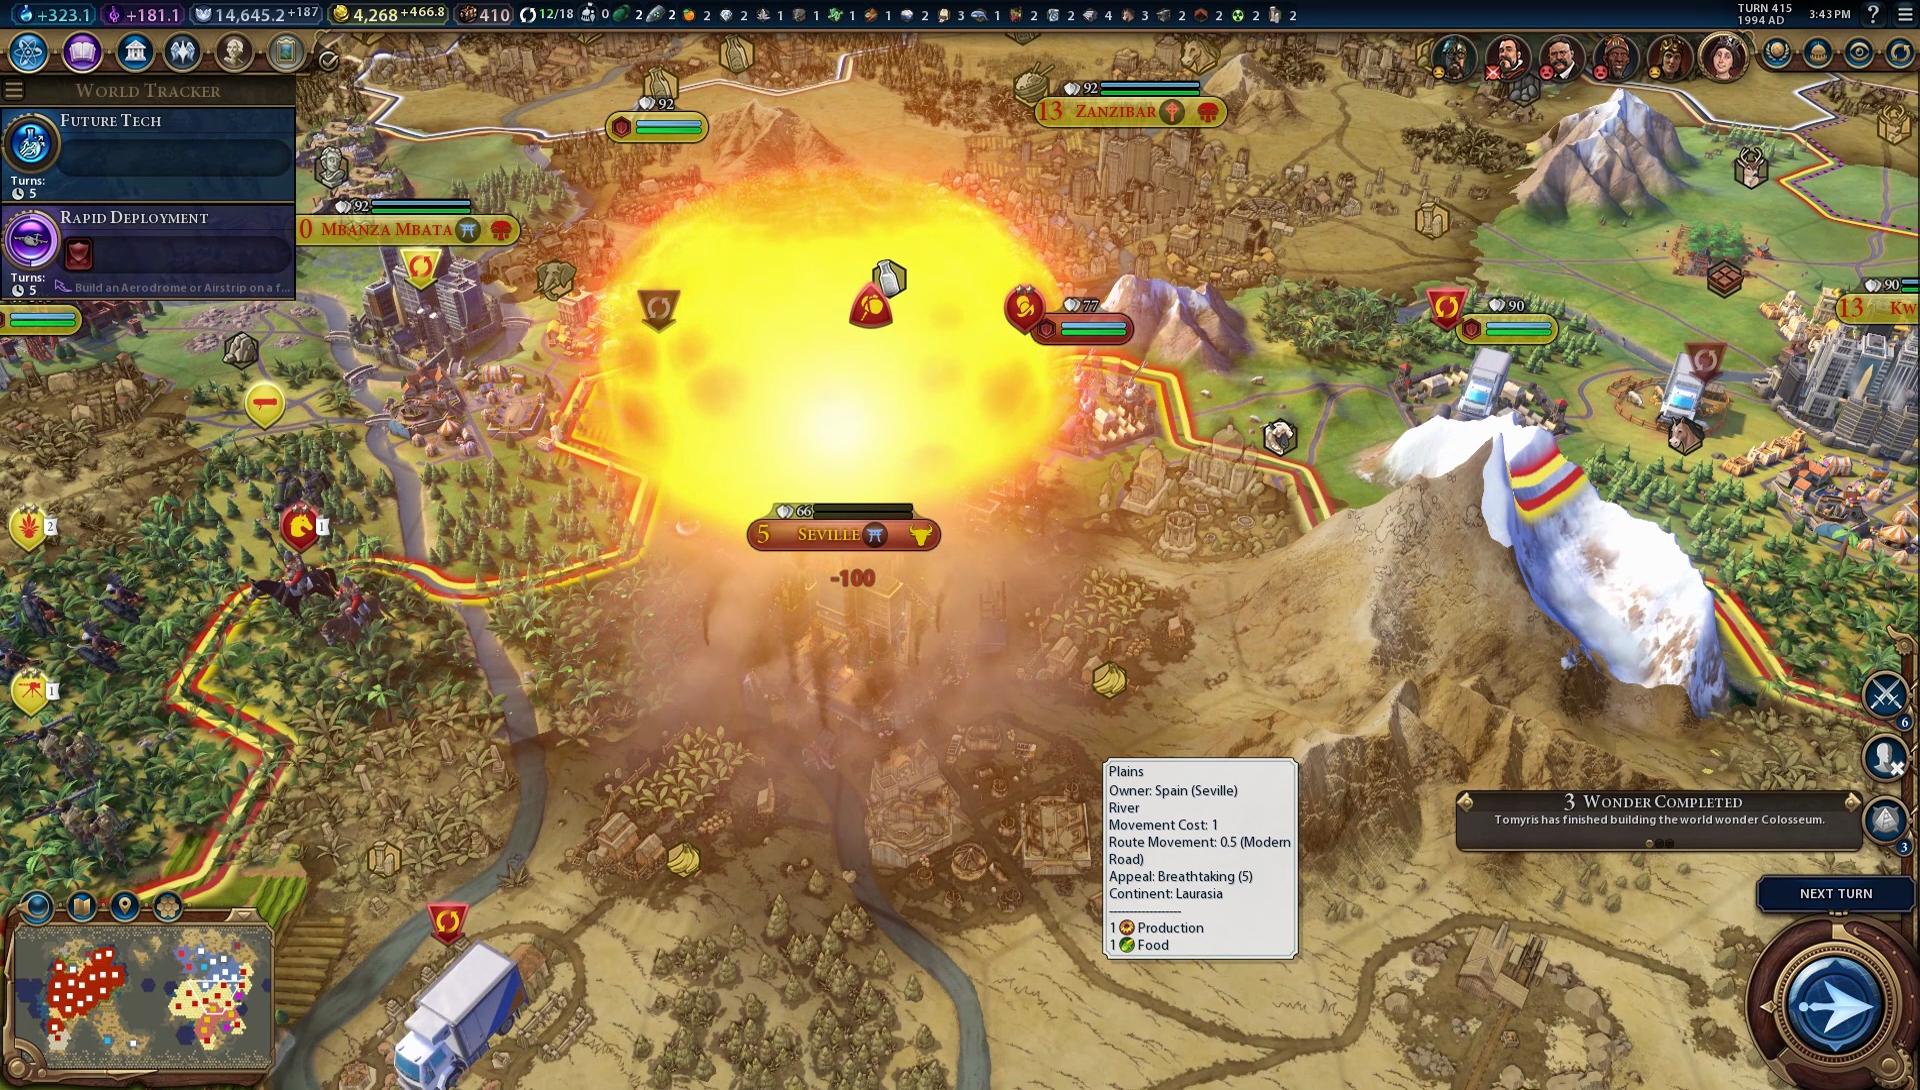 Civilization 6 loading woes: here's how to stop the game